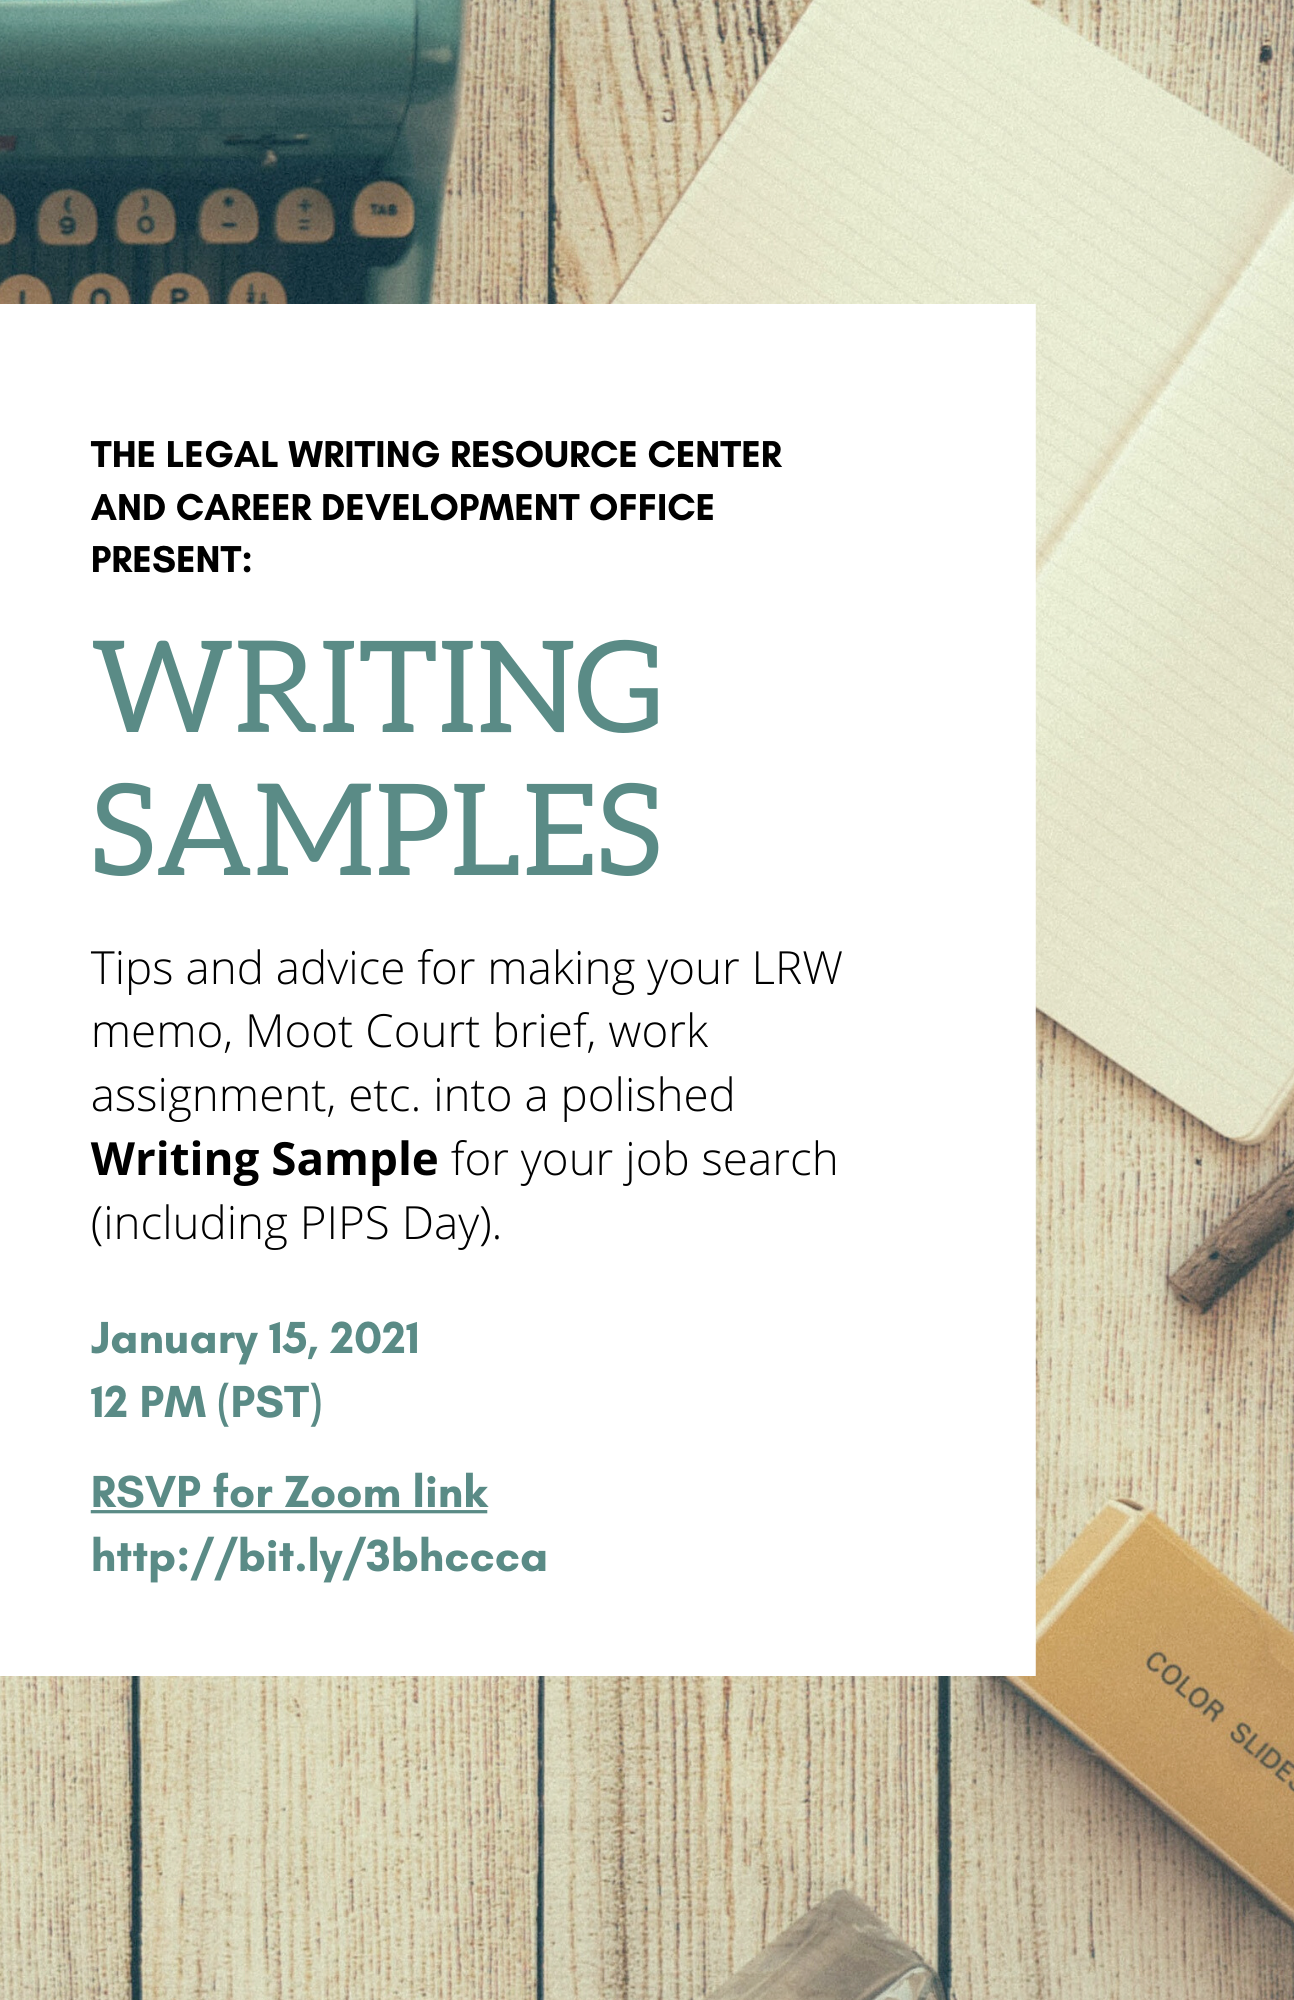 writing sample flyer